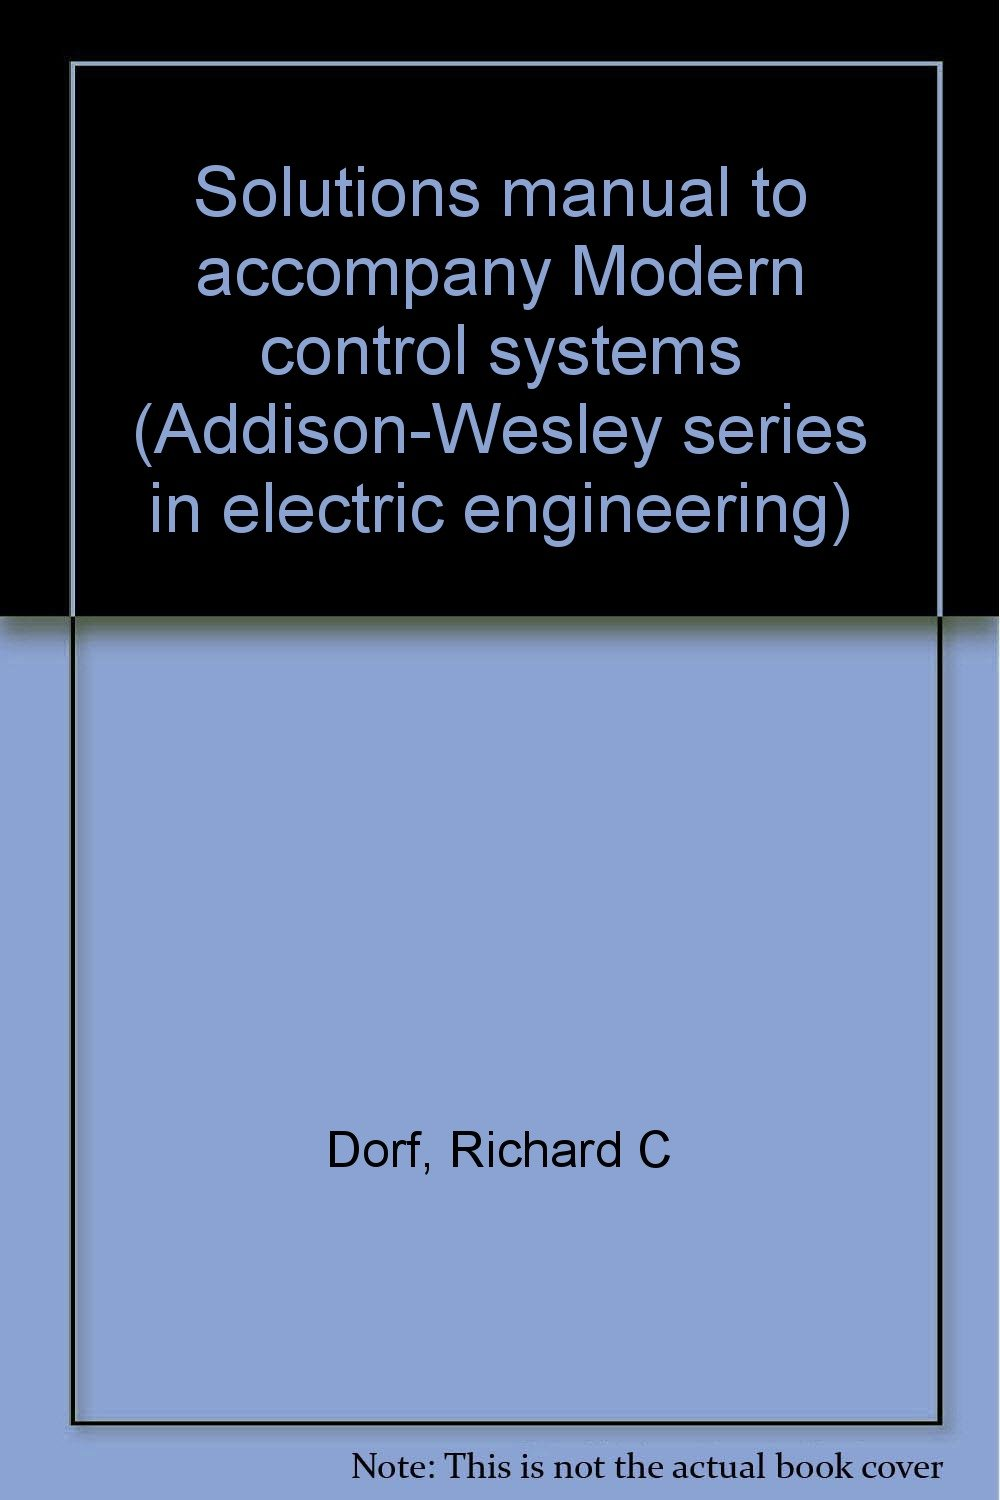 Solutions manual to accompany Modern control systems (Addison-Wesley series  in electric engineering): Richard C Dorf: 9780201053272: Amazon.com: Books